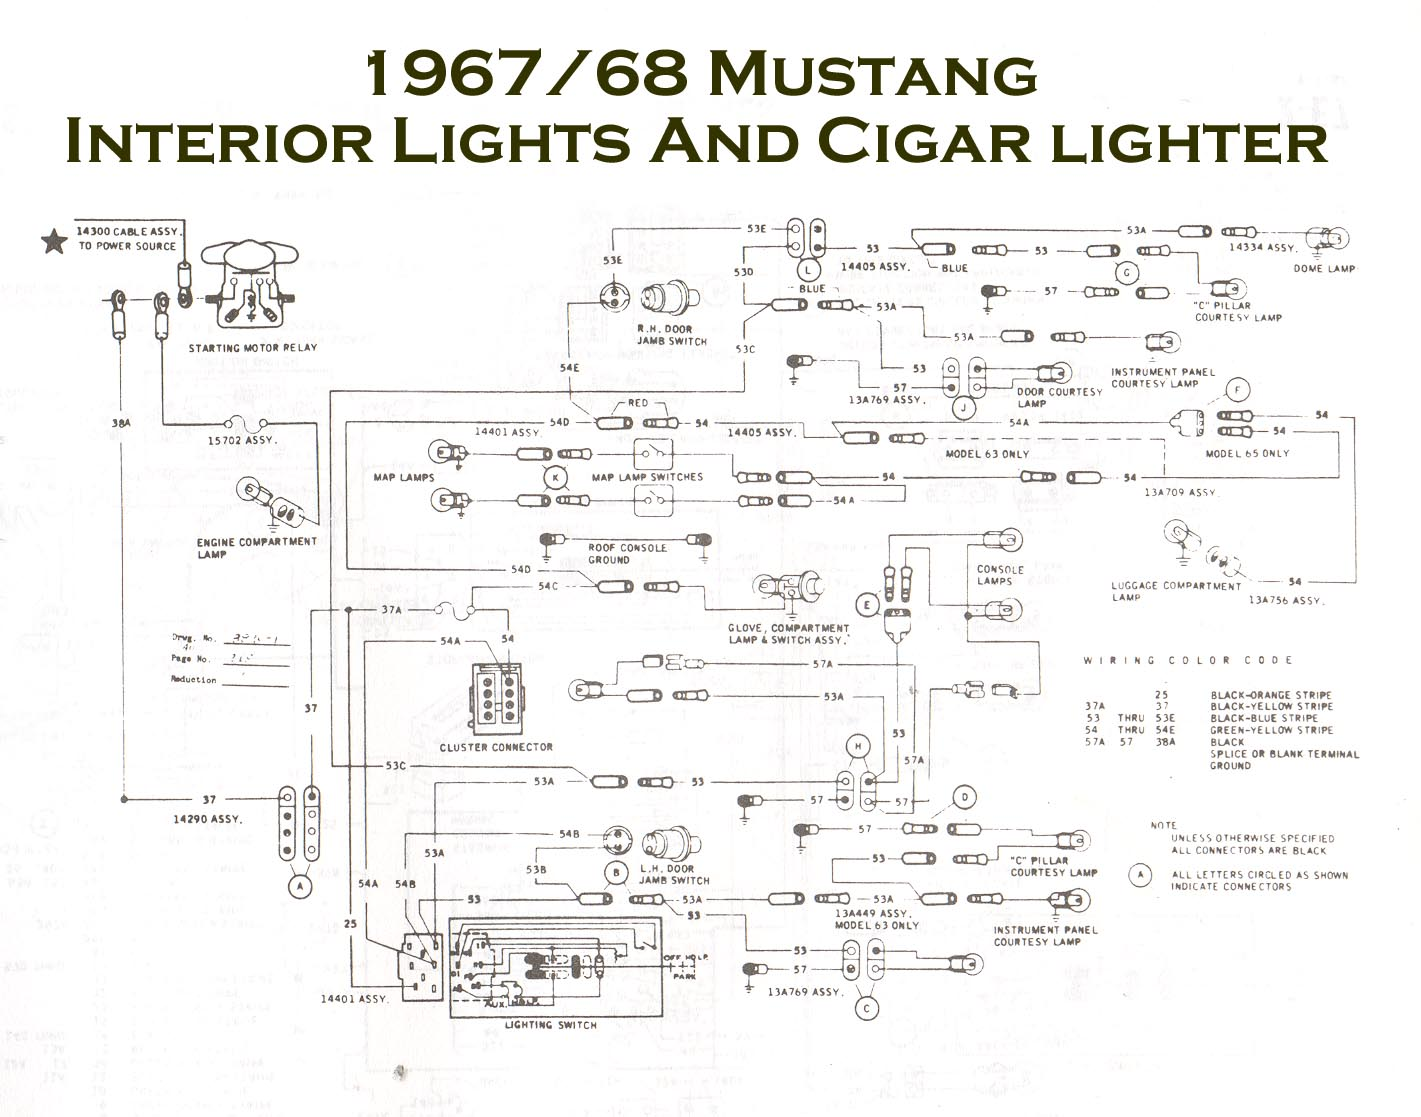 Dome Light Wiring Diagram 2004 Cobra Libraries Mahindra Tractor Alfa Romeo Gt Diagrams 1967 Mustang Radio Librarytrying To Find Original Mustangforums Com 1972